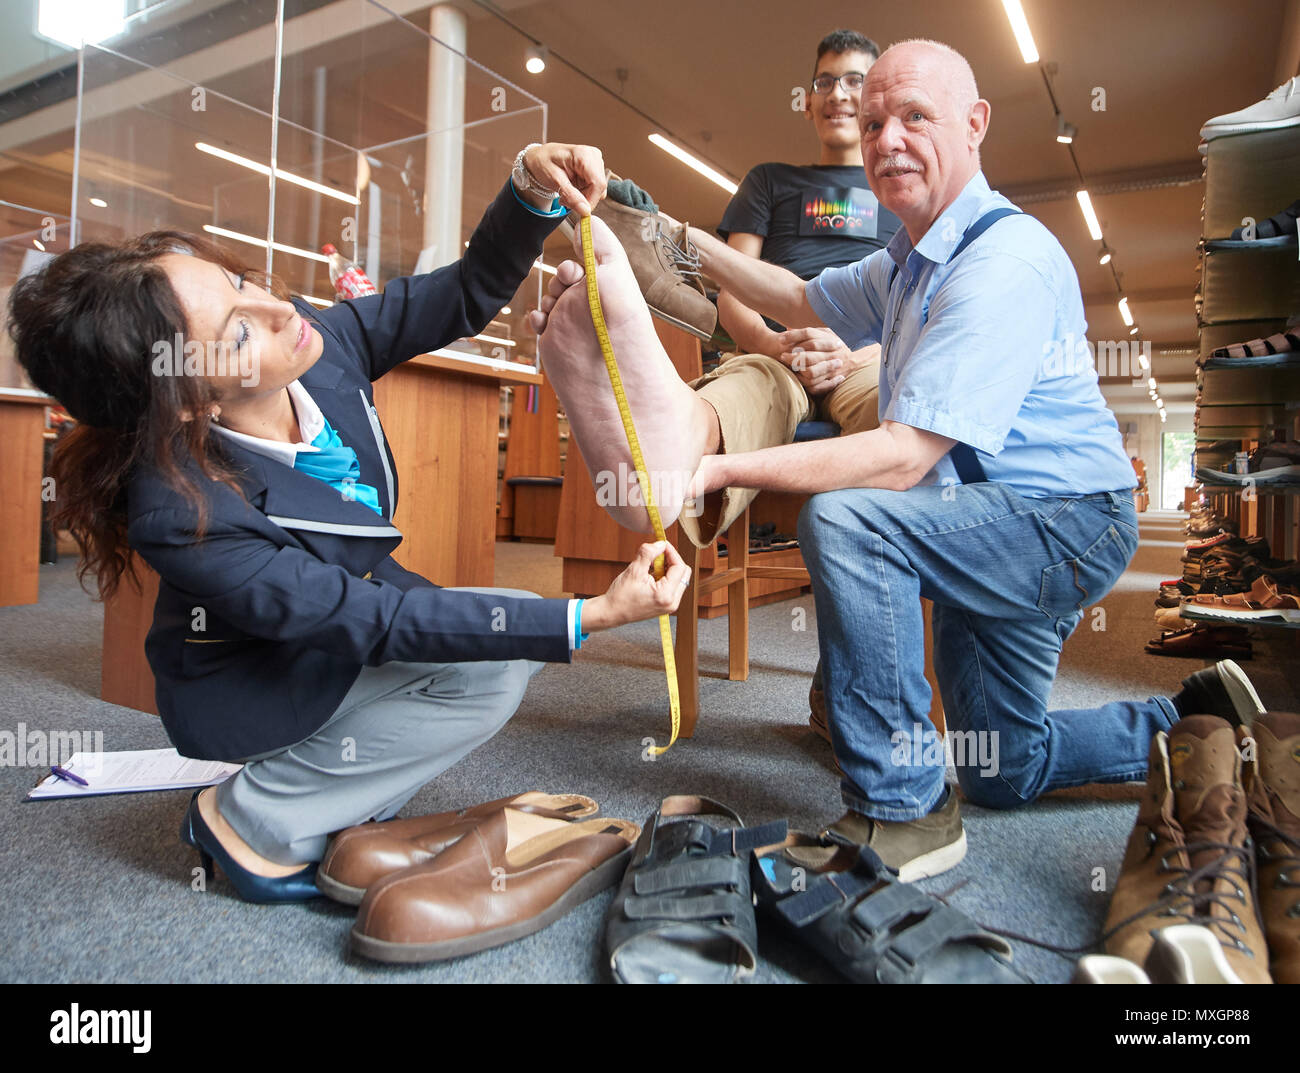 04 June 2018, Vreden, Germany: The right foot of Jeison Rodriguez, the man with the world's biggest feet, is being measured by Lucia Sinigagliesi, Judge of the Guniess World Records and Georg Wessels of the Oversized shoe making workshop 'Wessels'. The 22 year- old from Venezuela wears a size 68 and has had his shoes specially made for him by a Shoemaker from Vreden (near the Borders of Netherlands) for the past 5 years. Guiness World Records has confirmed on June 4, 2018 that his massive feet with 40.55 cm left and 40.57 cm right are still the world's biggest feet. Photo: Bernd Thissen/dpa - Stock Image